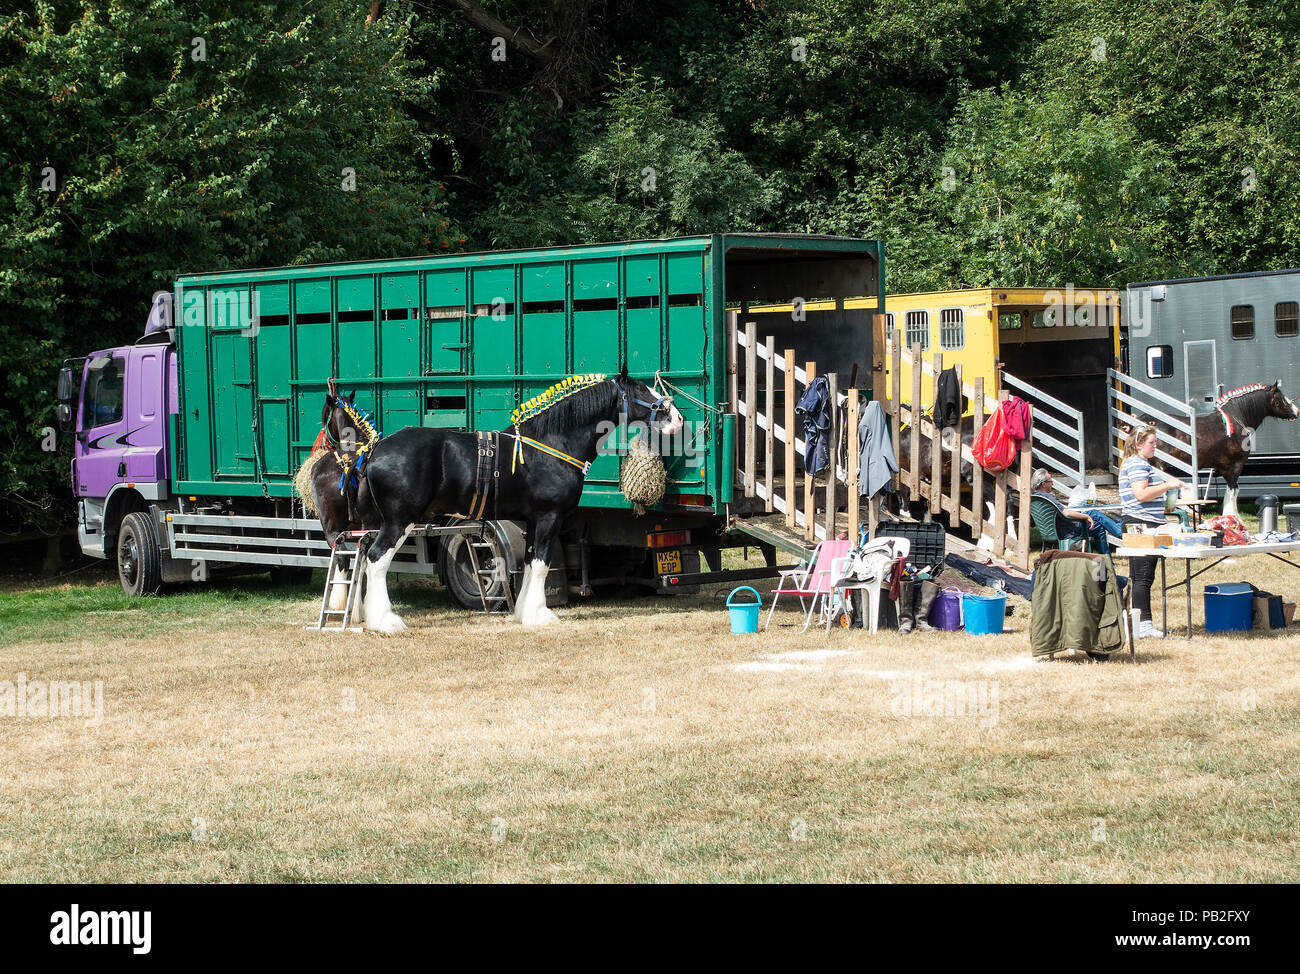 Shire Horses Tethered to Their Horseboxes in a Field Prior to Competition at the Nantwich Agricultural Show in Cheshire England United Kingdom UK - Stock Image